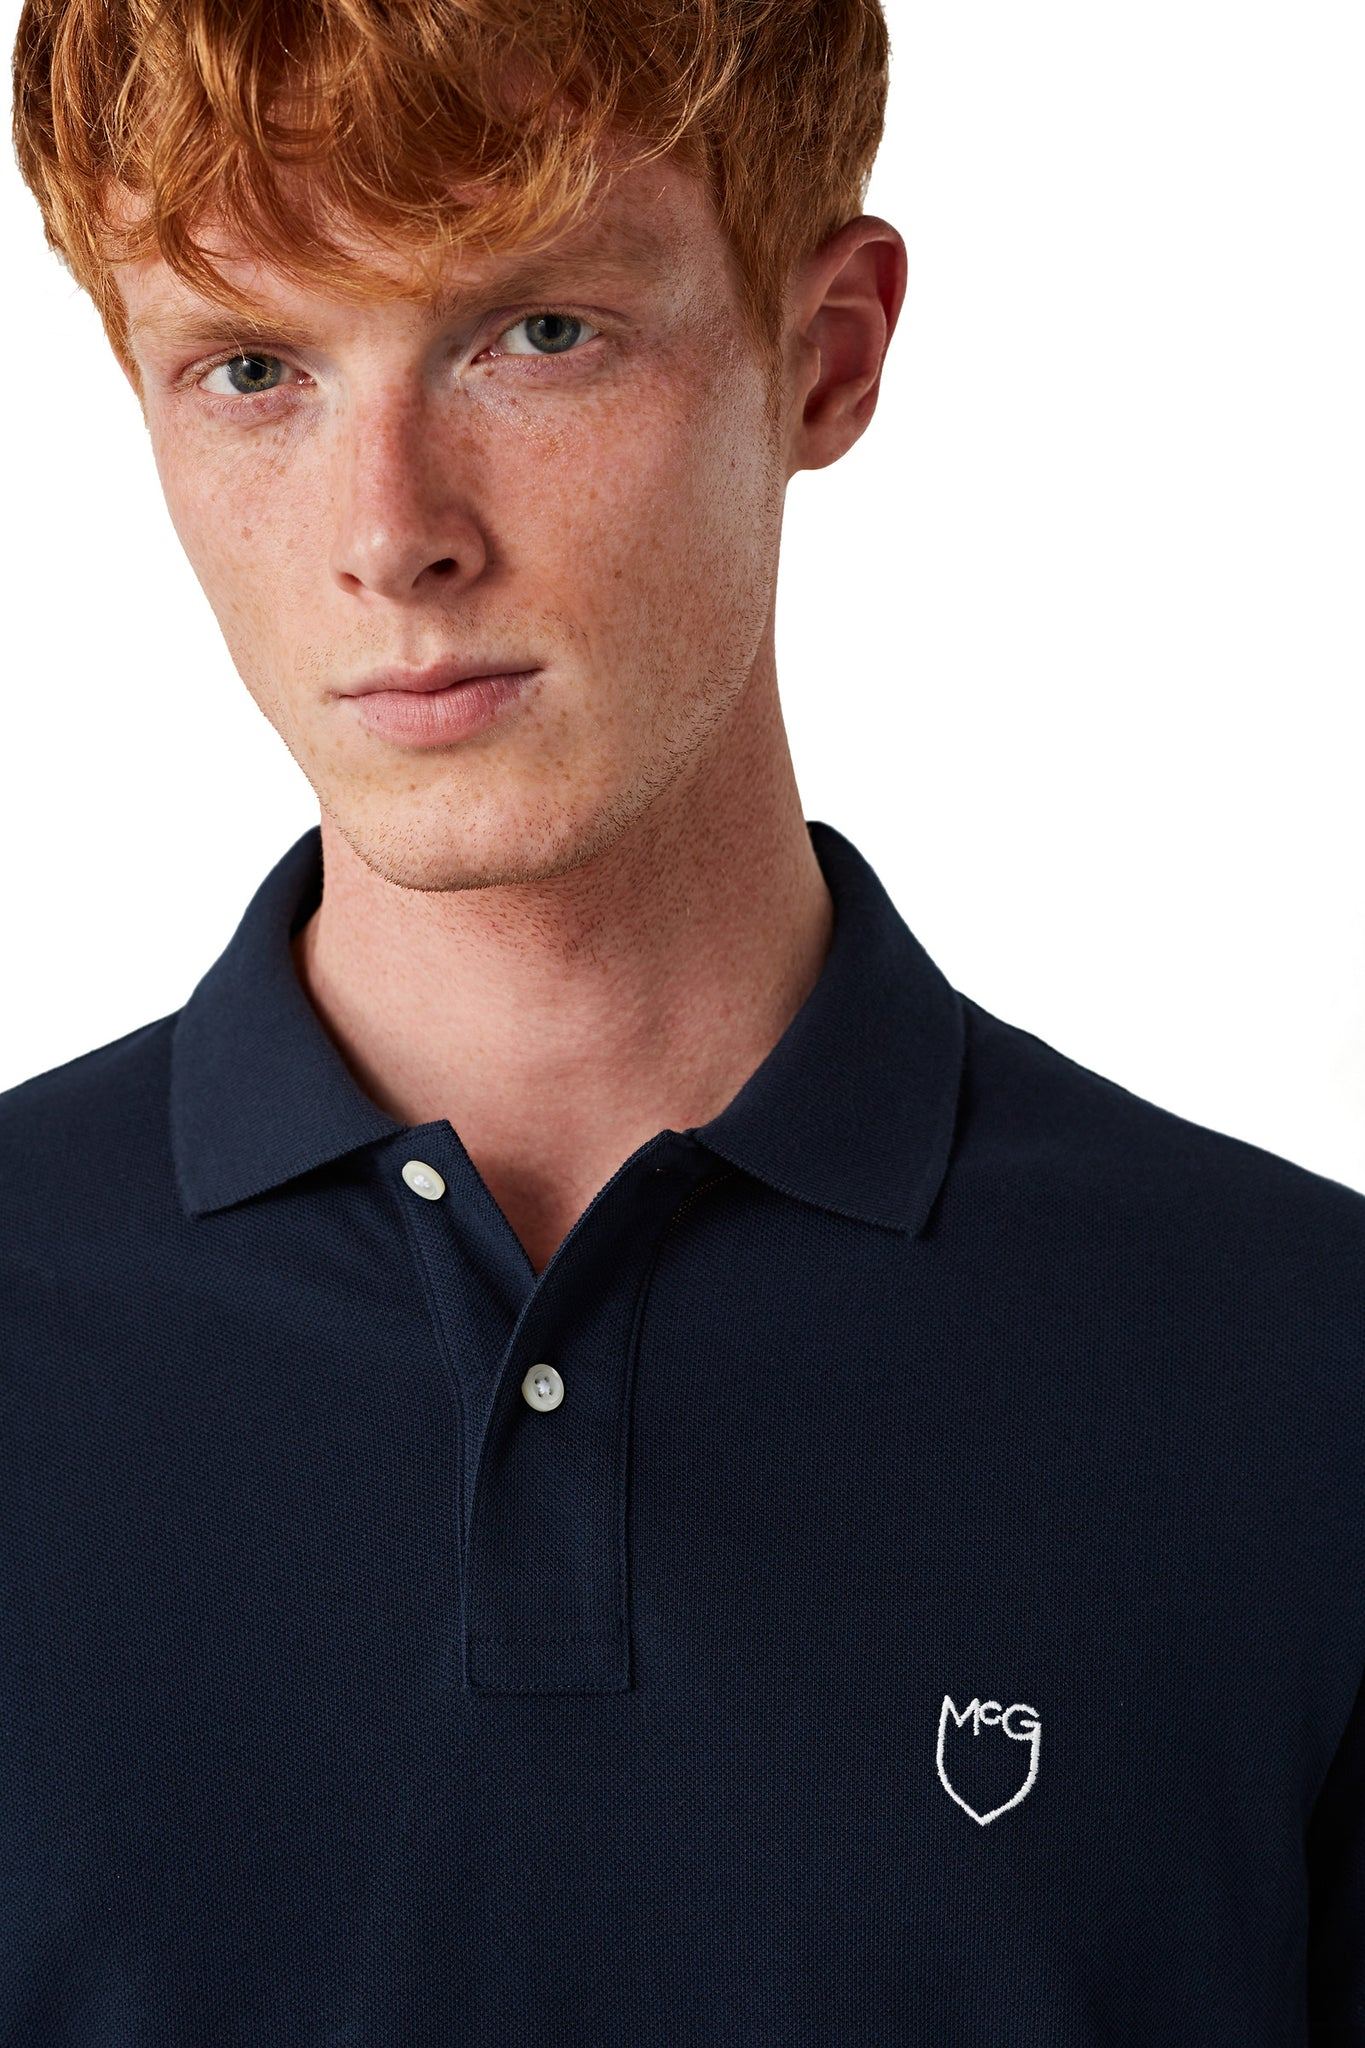 Classic Polo Regular Fit with McG shieldlogo